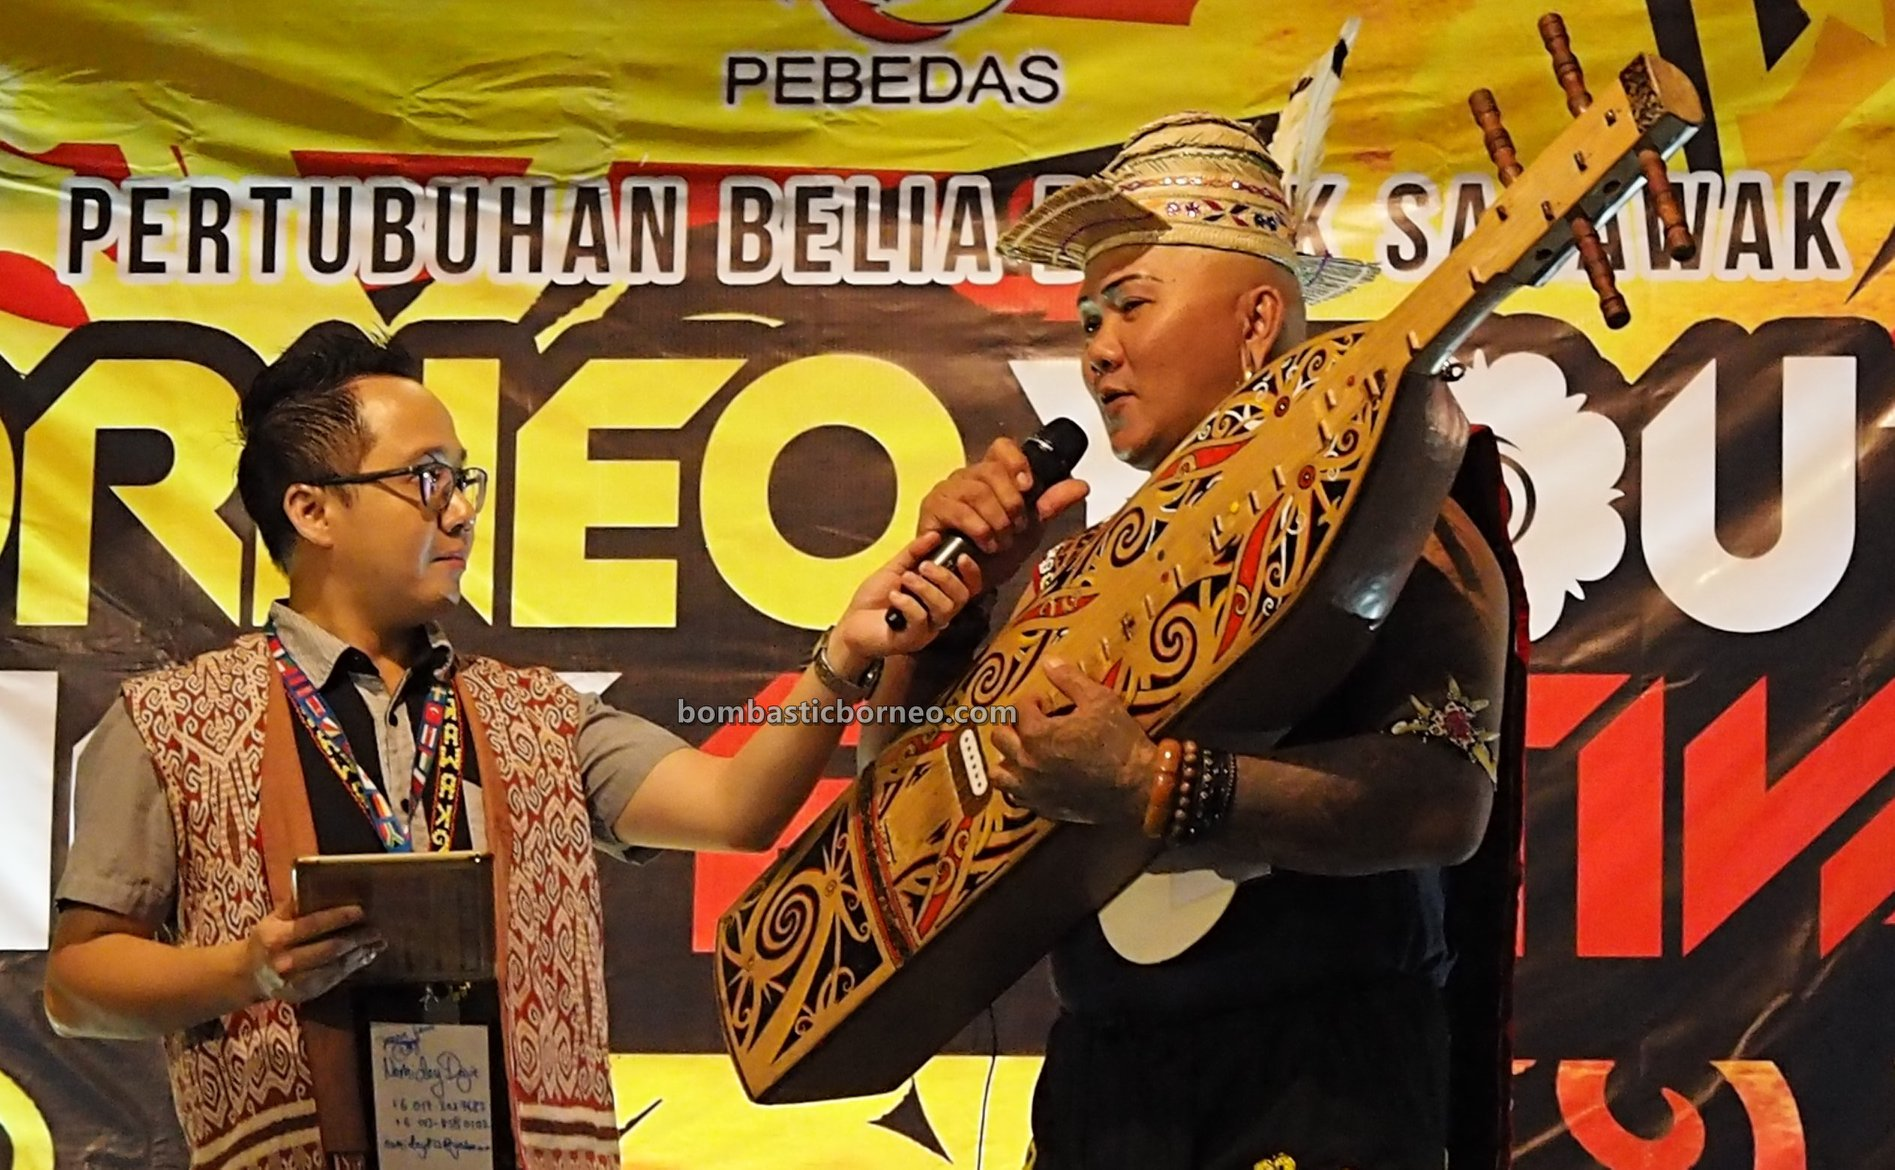 Youth Sape Festival, authentic, traditional, culture, event, Ethnic, indigenous, orang ulu, One Malaysia Cultural Village, Tourism, tourist attraction, travel guide, 探索婆罗洲游踪, 砂拉越原住民沙贝, 马来西亚达雅音乐